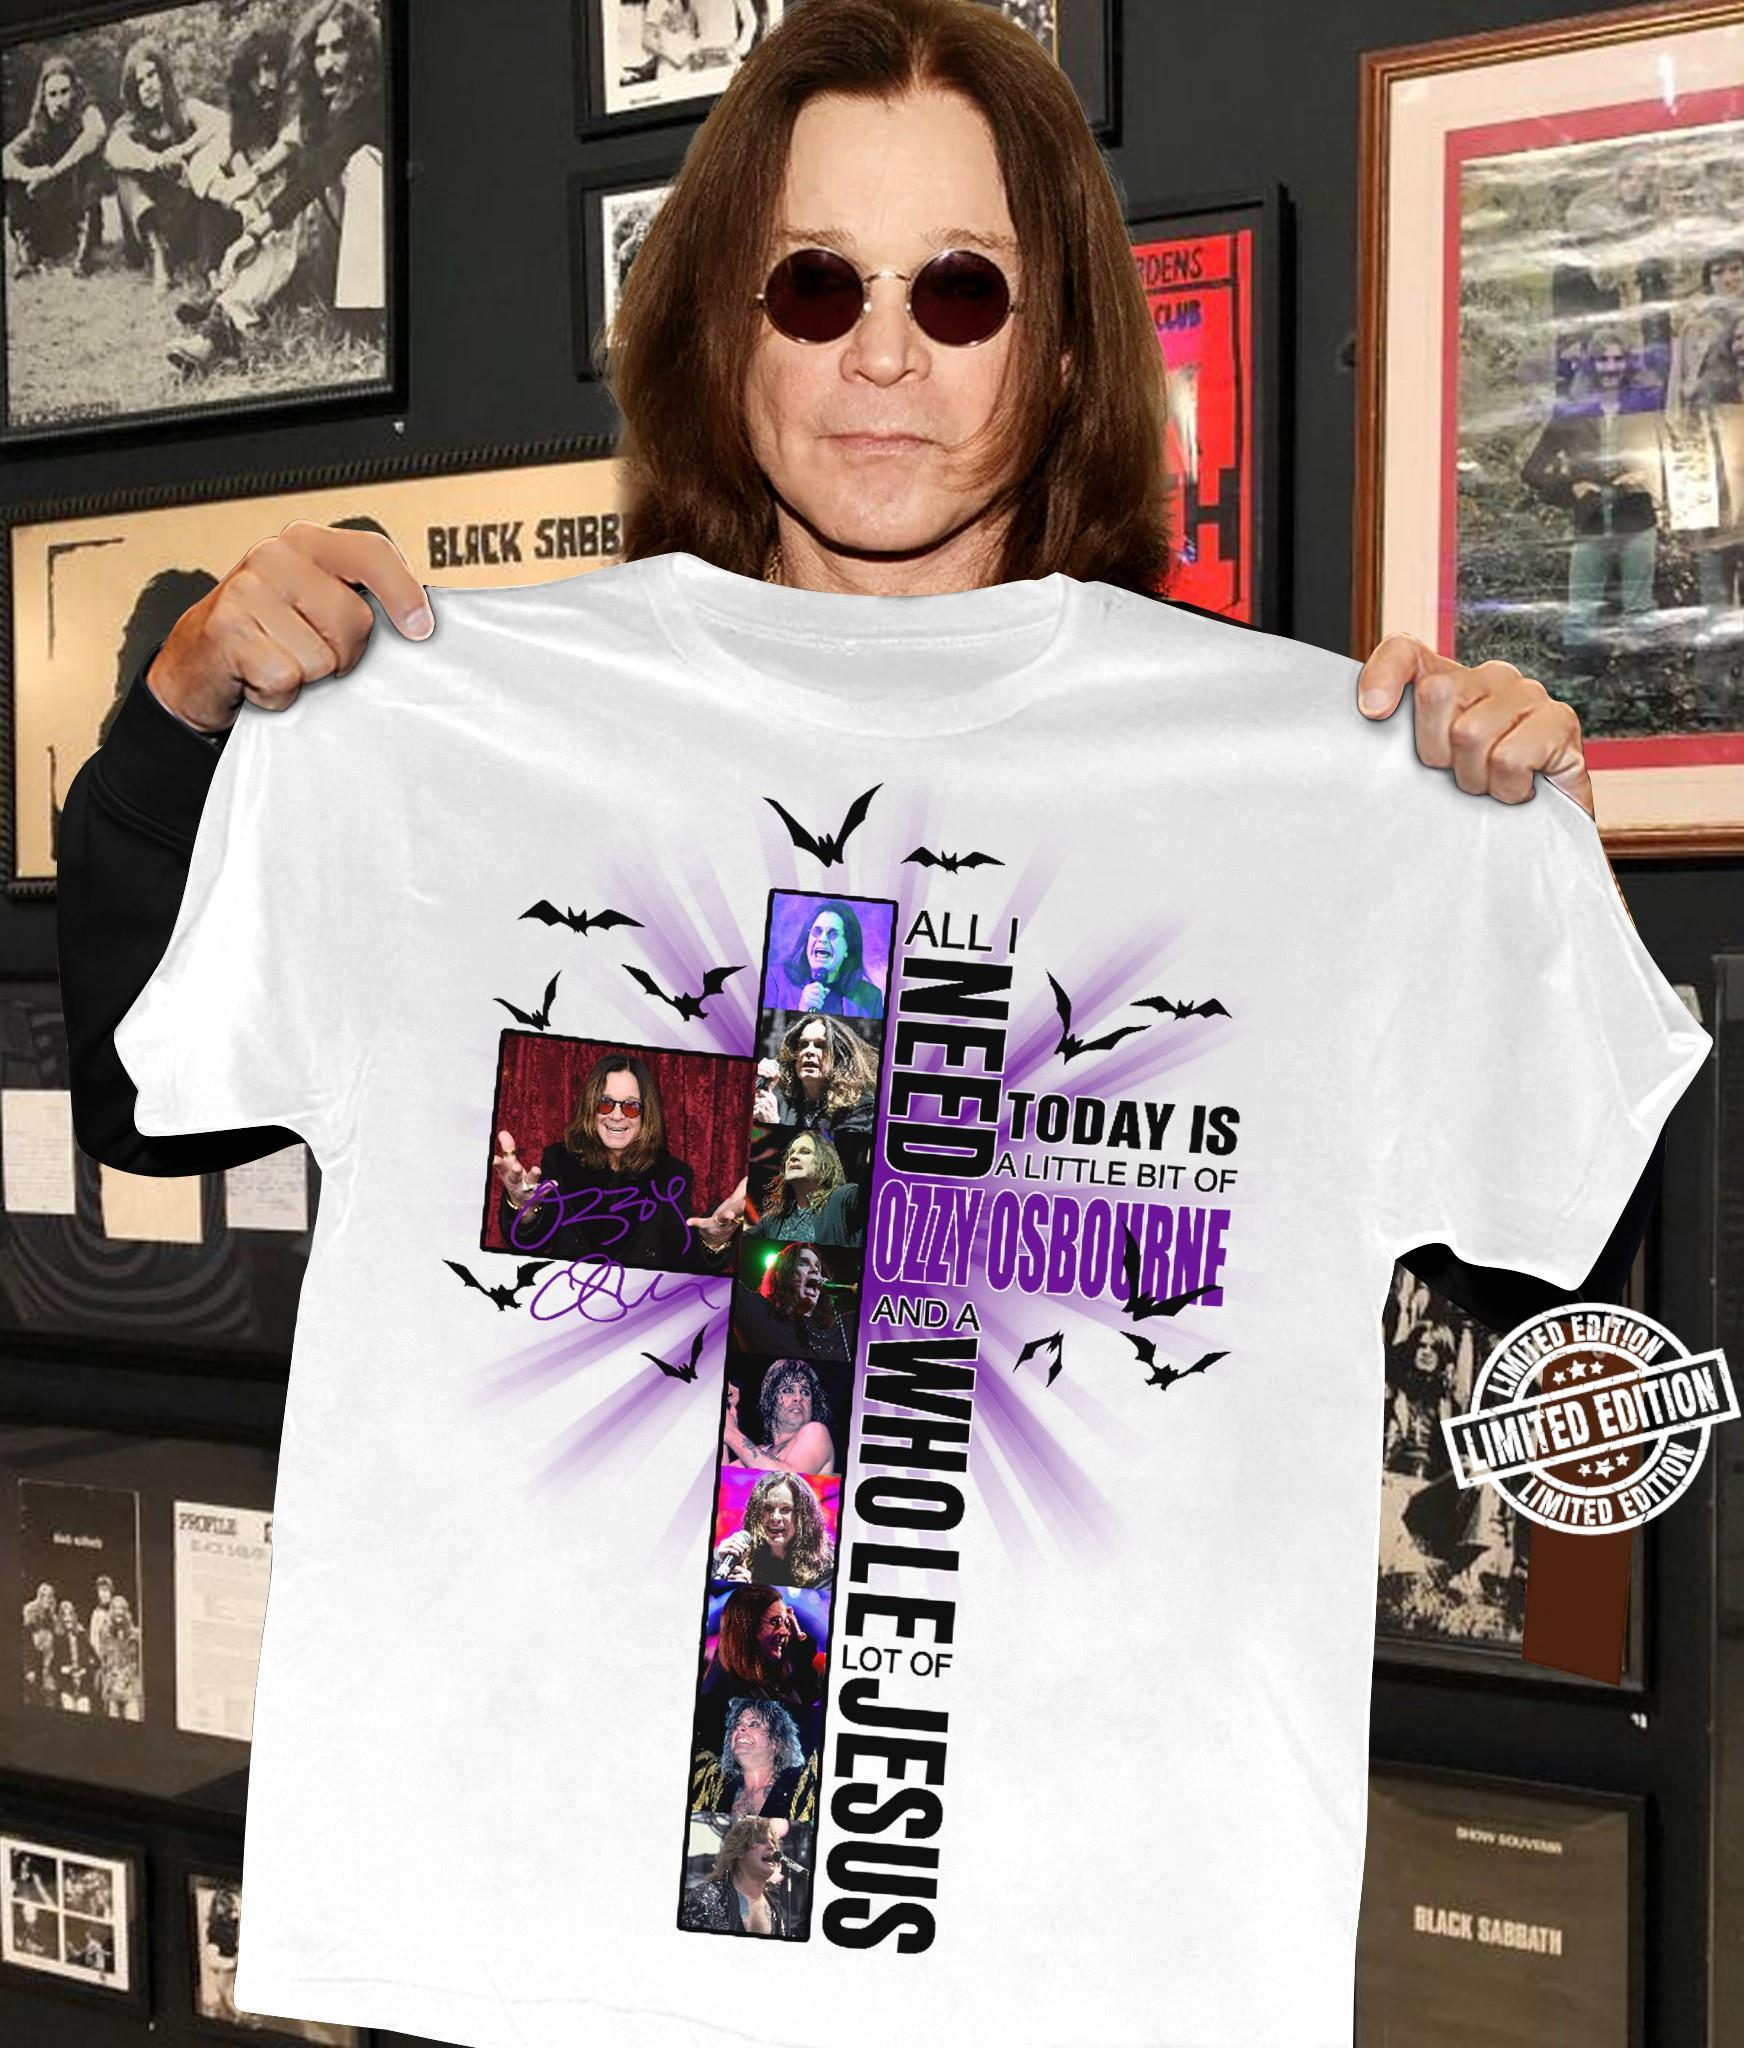 All I need today is a little bit of ozzy osbourne and a whole lot of jesus shirt